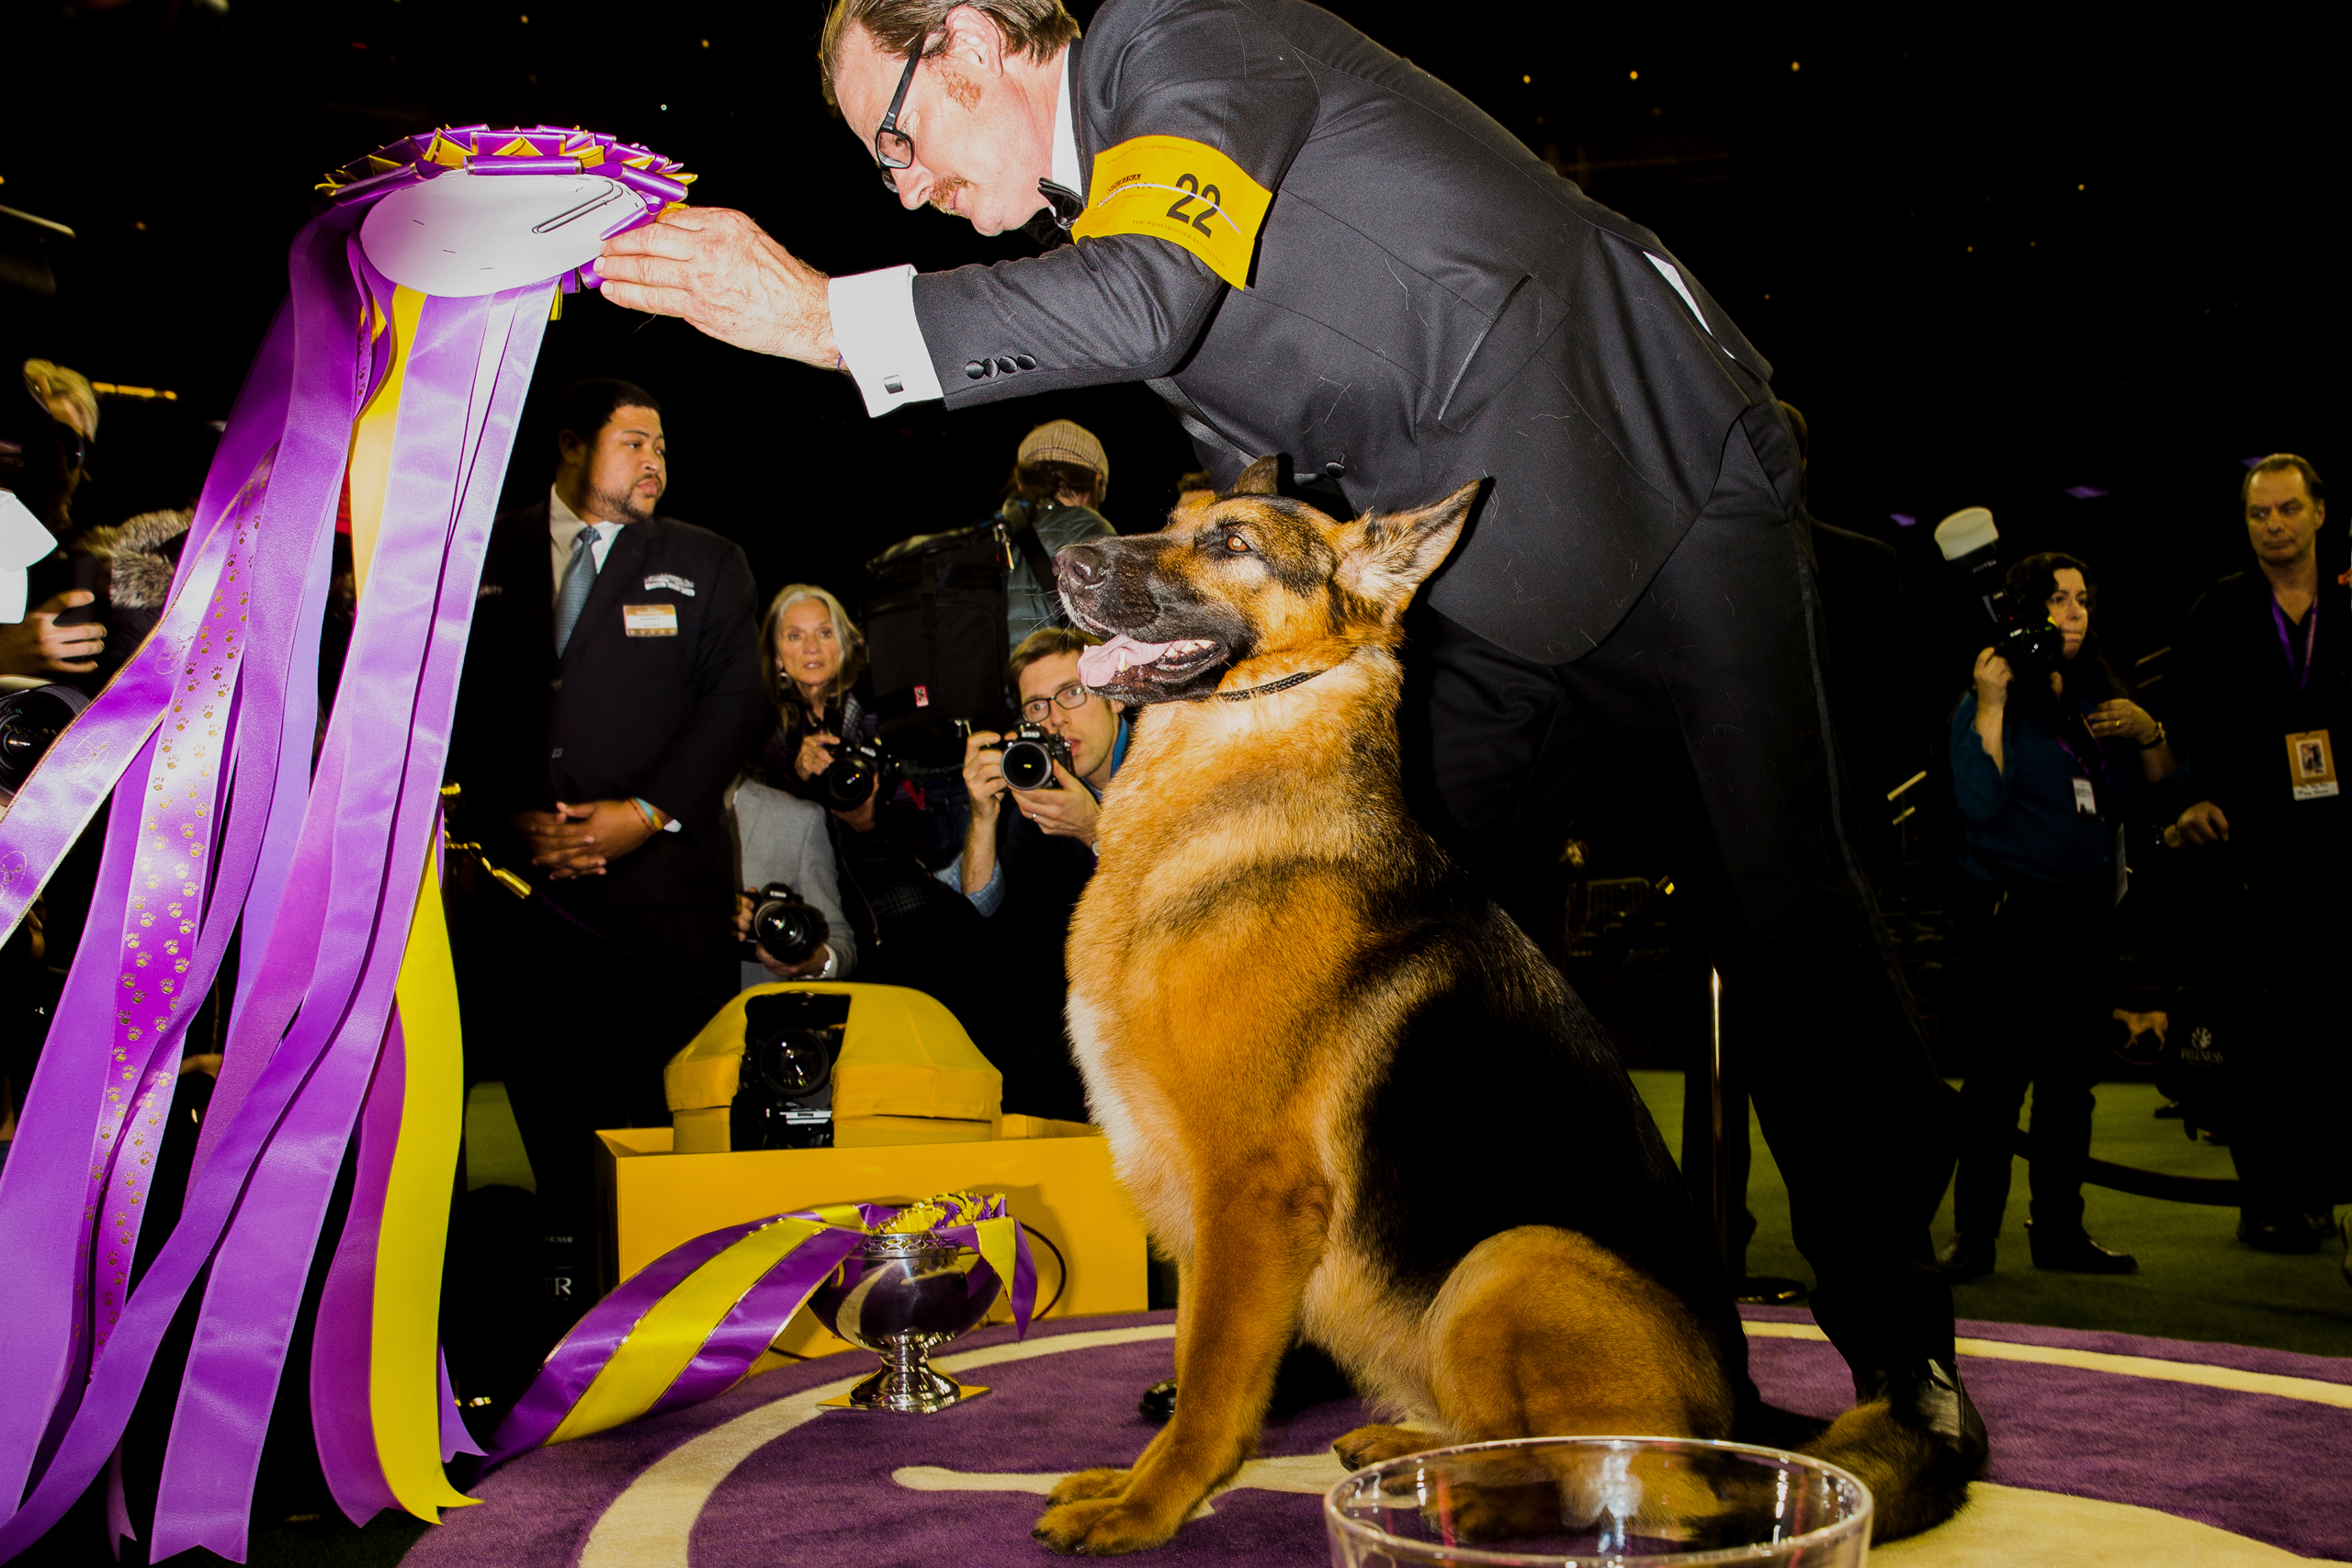 Rumor, a German shepherd, stands next to his handler in the winner's circle after taking the   Best In Show  award at the 141st Westminster Kennel Club Dog Show in New York on Feb. 14, 2017.